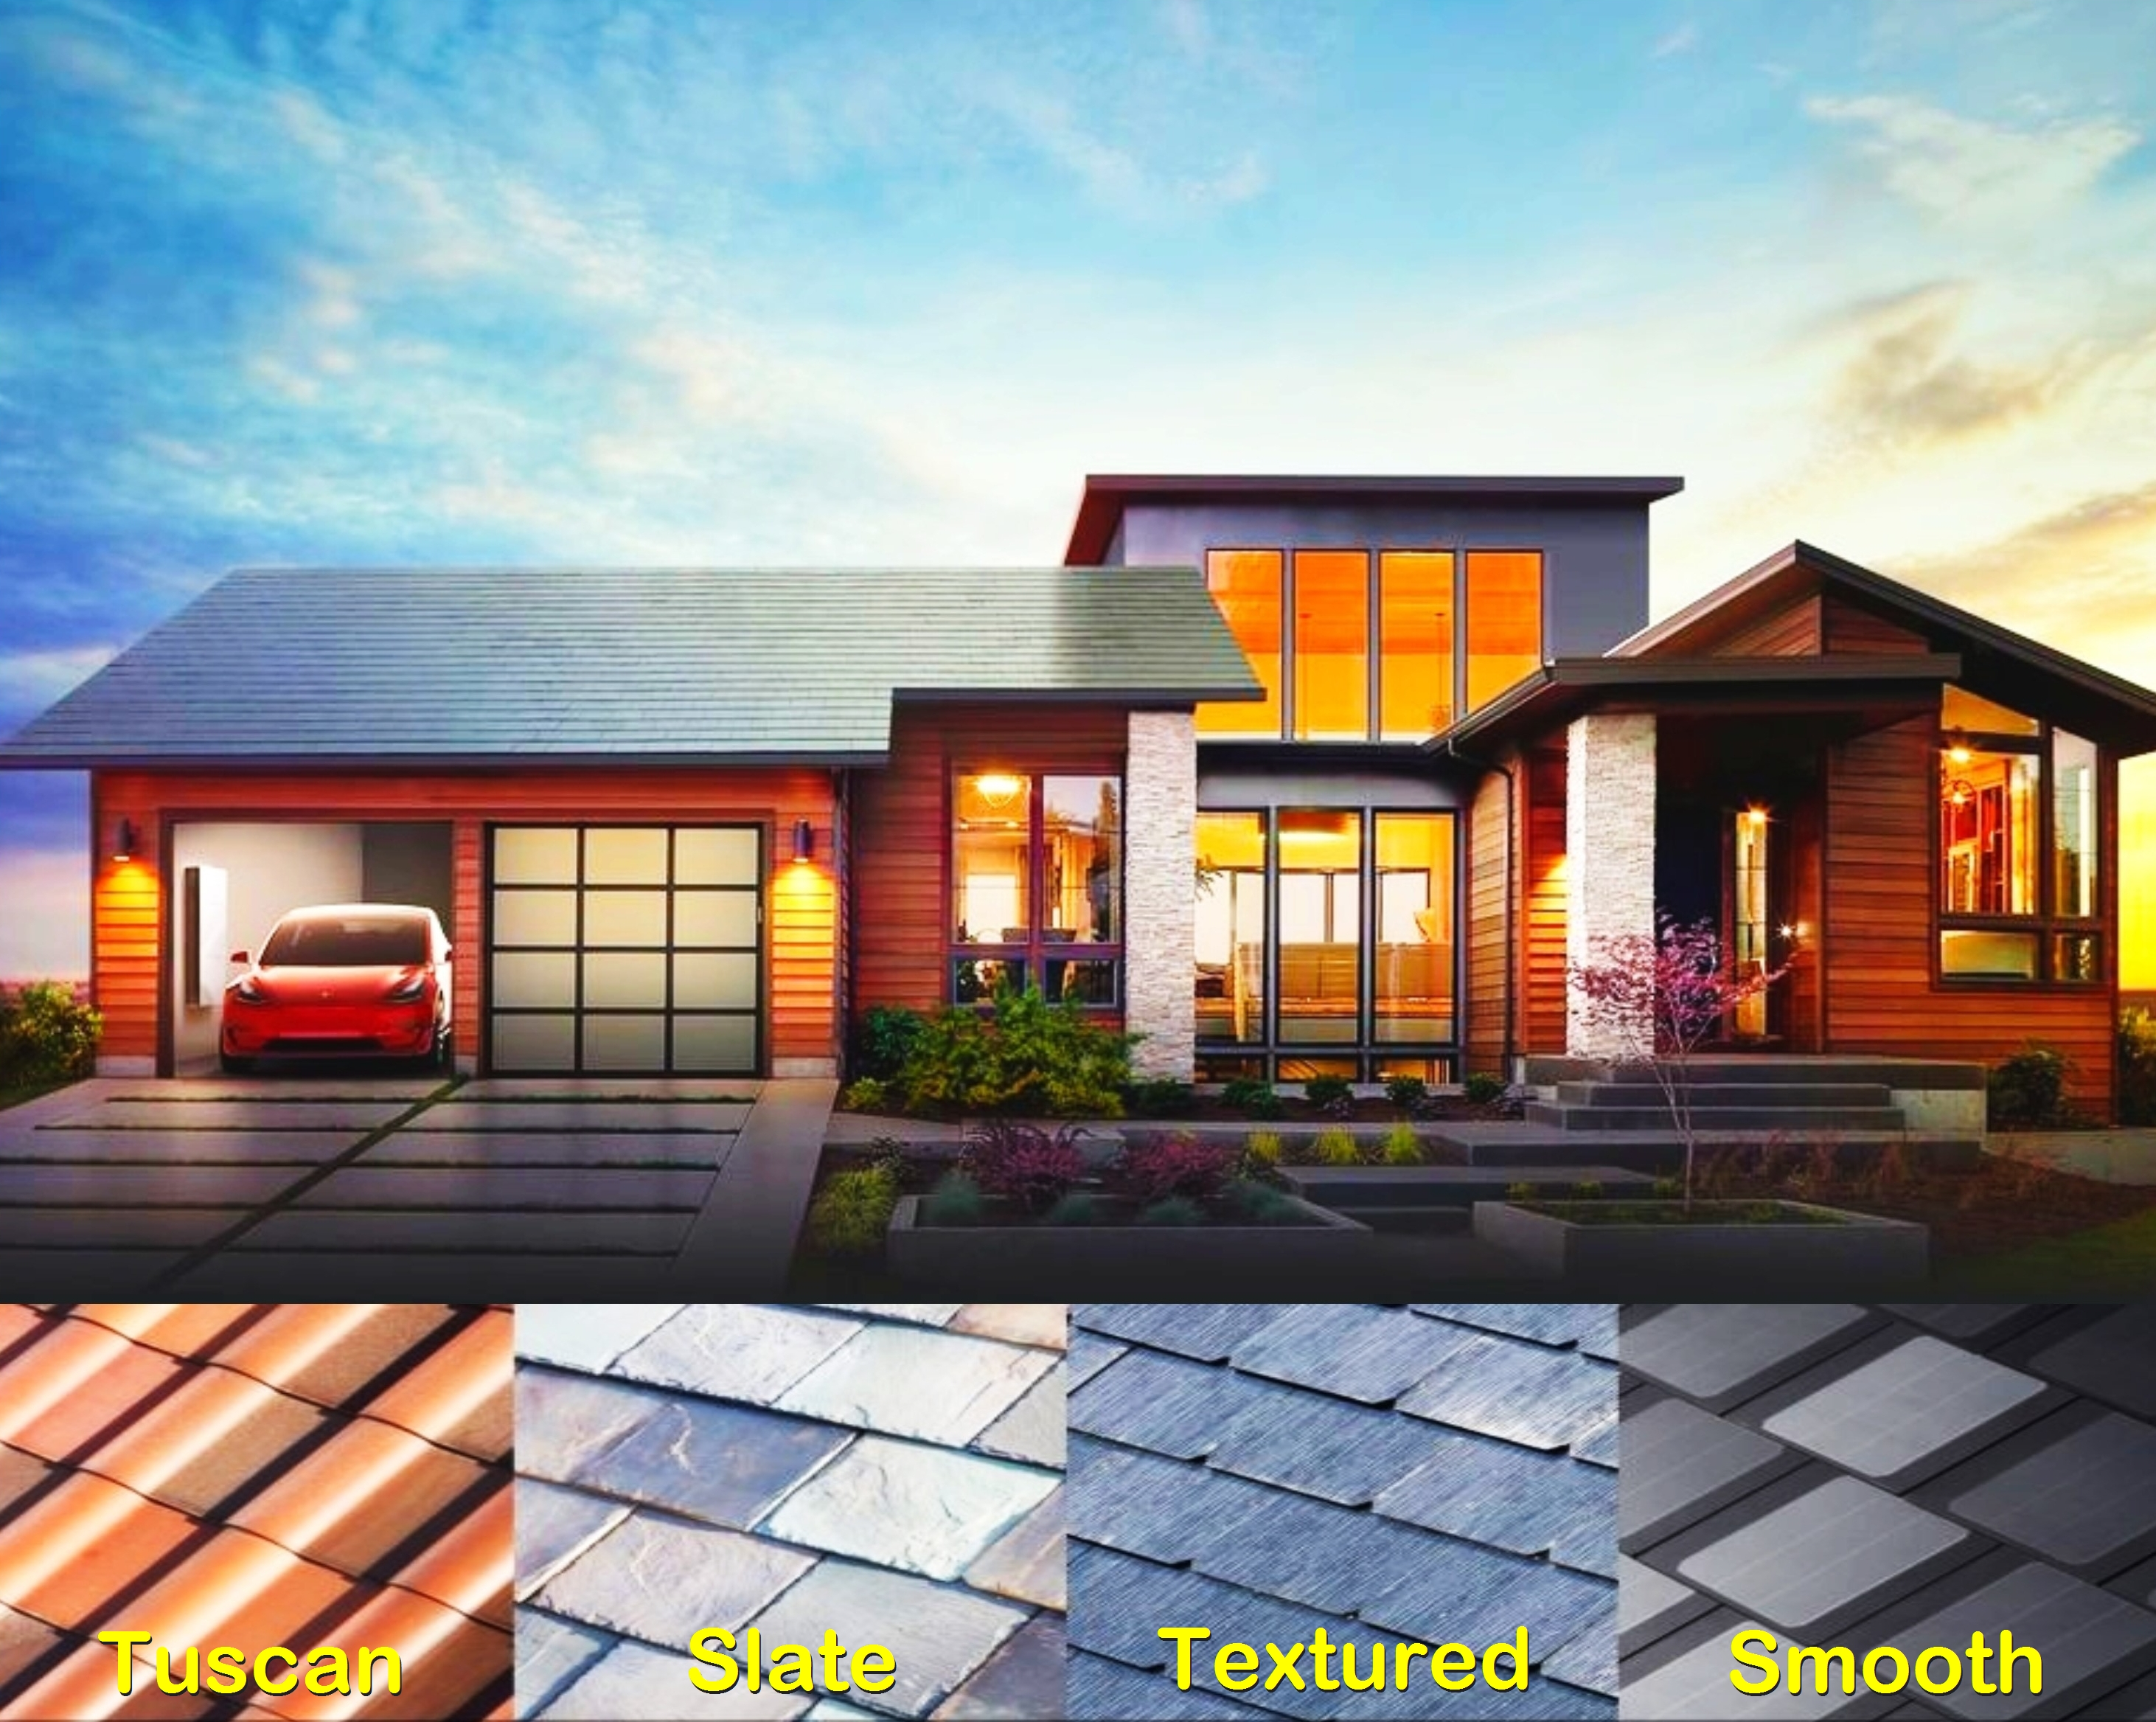 Solar powered roof tiles